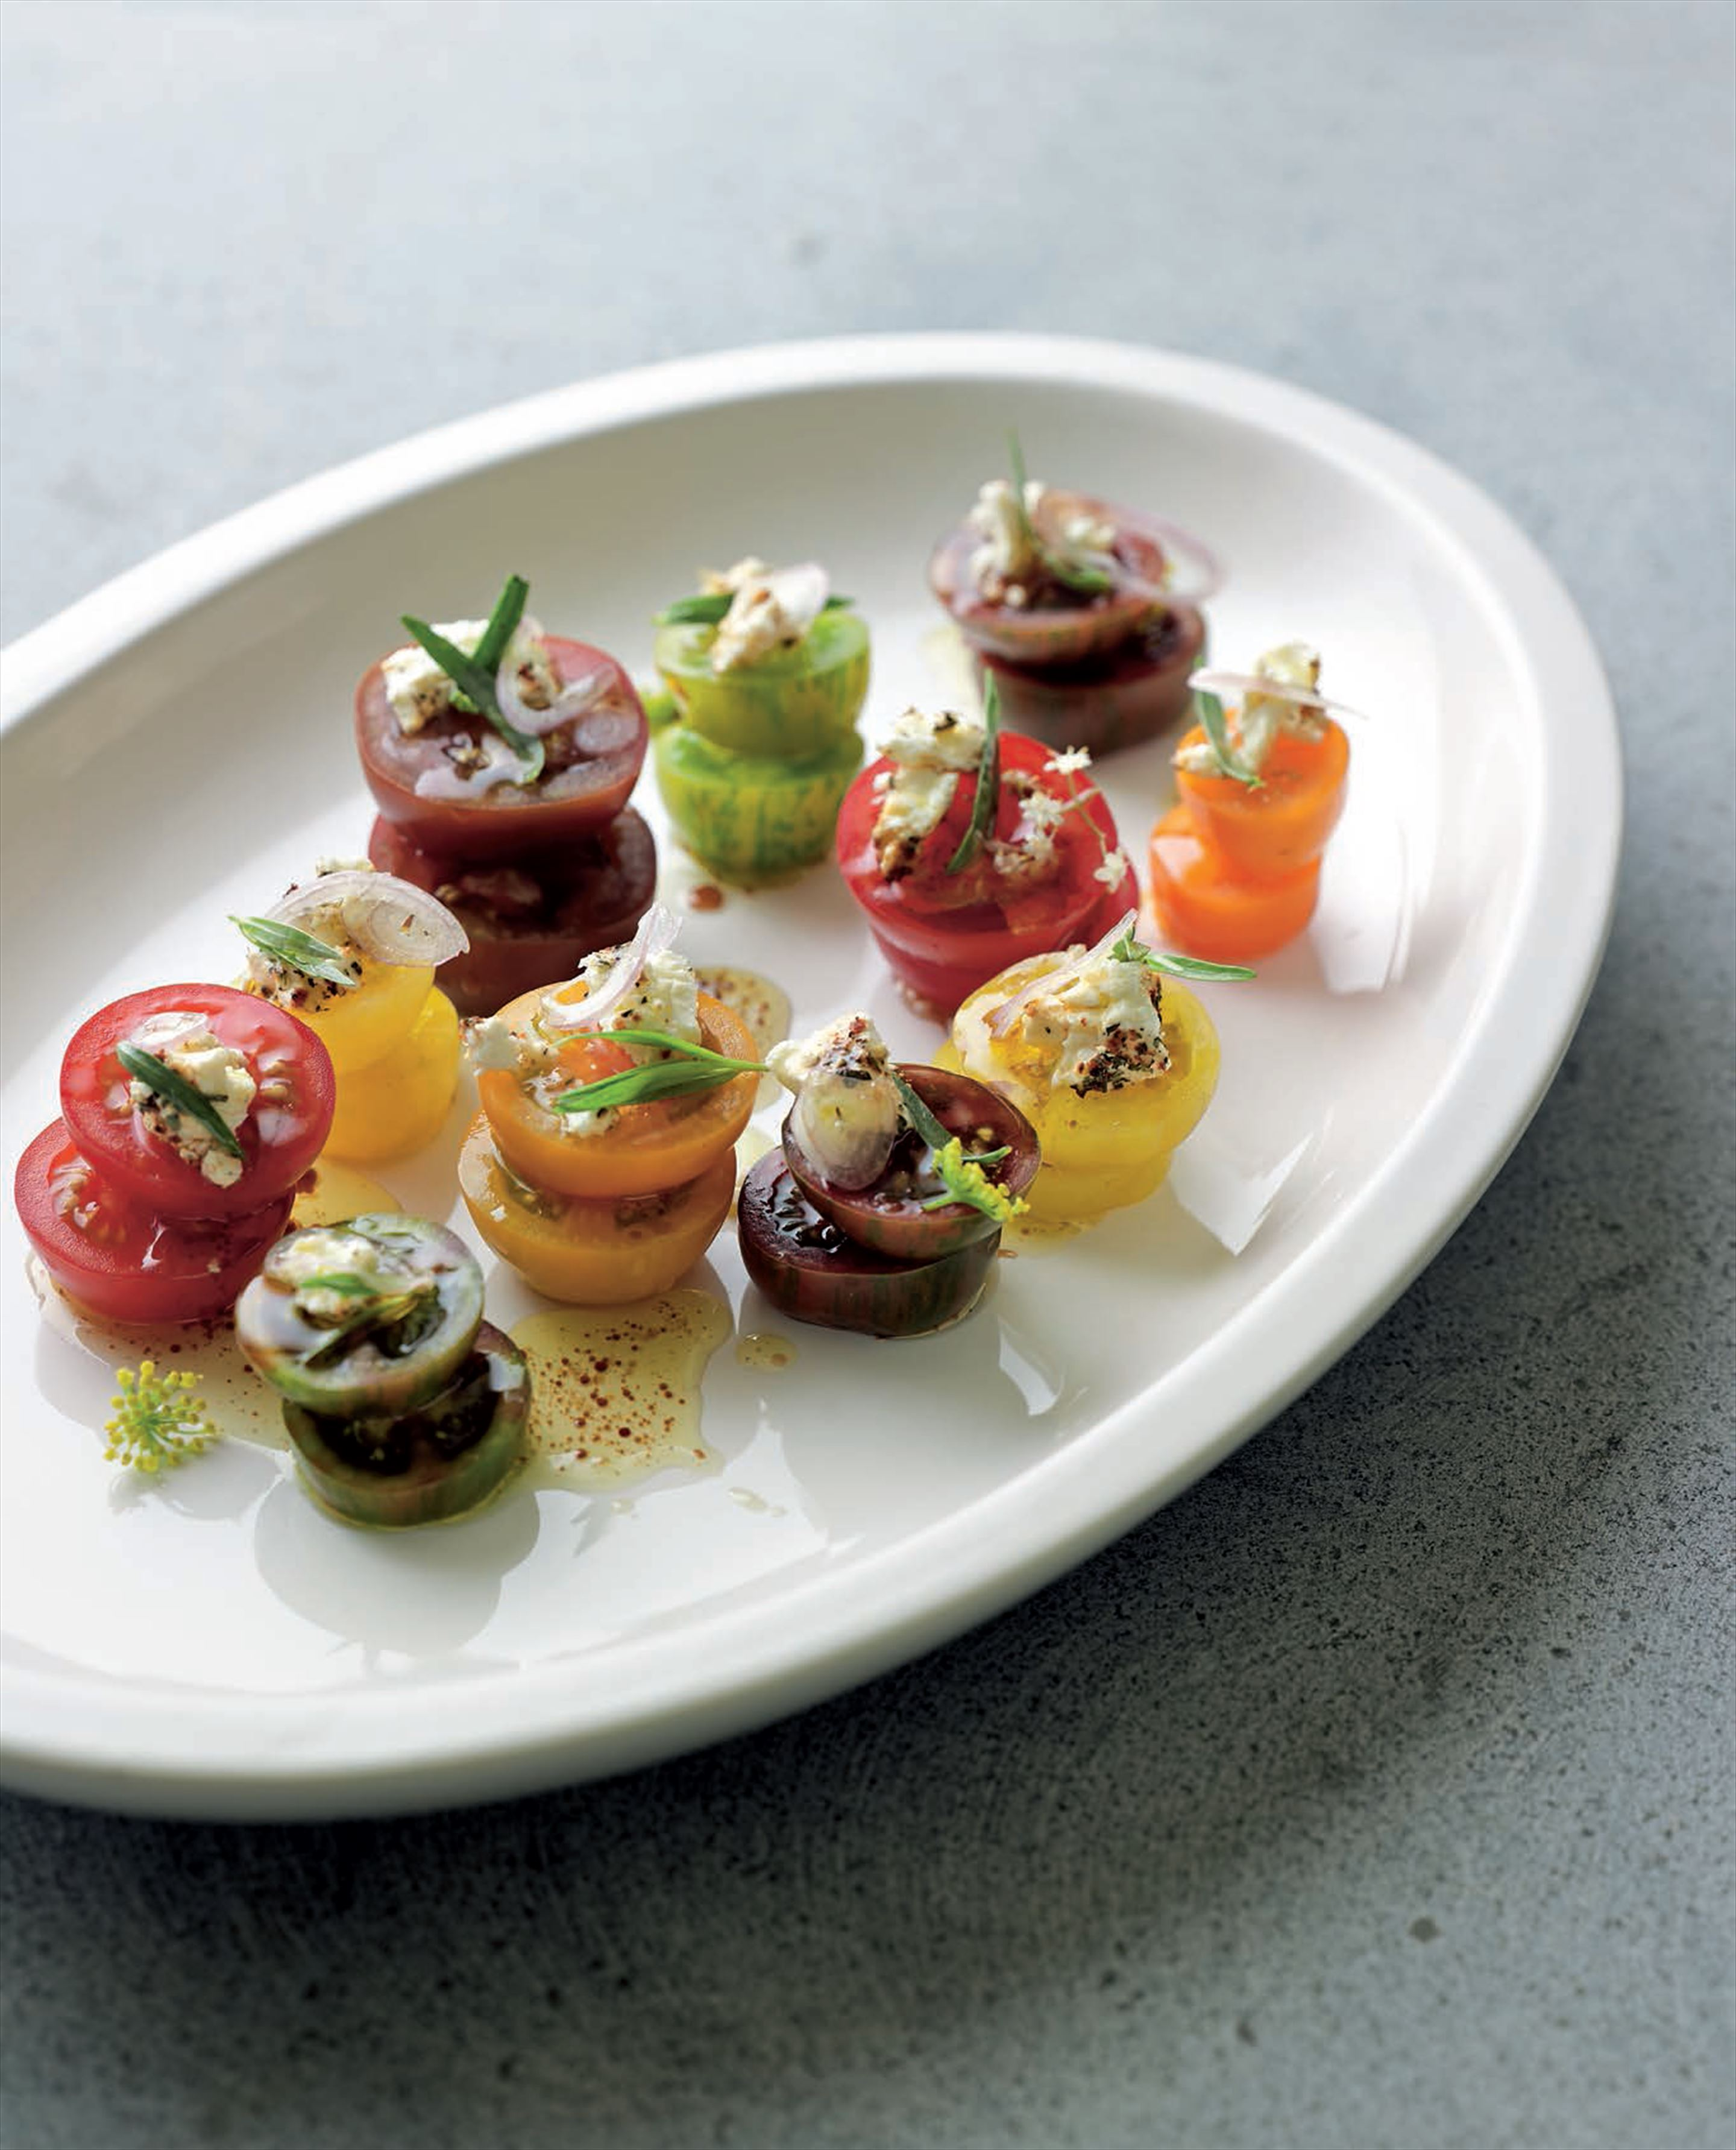 Tomato salad with tarragon, shankleish cheese and sumac dressing